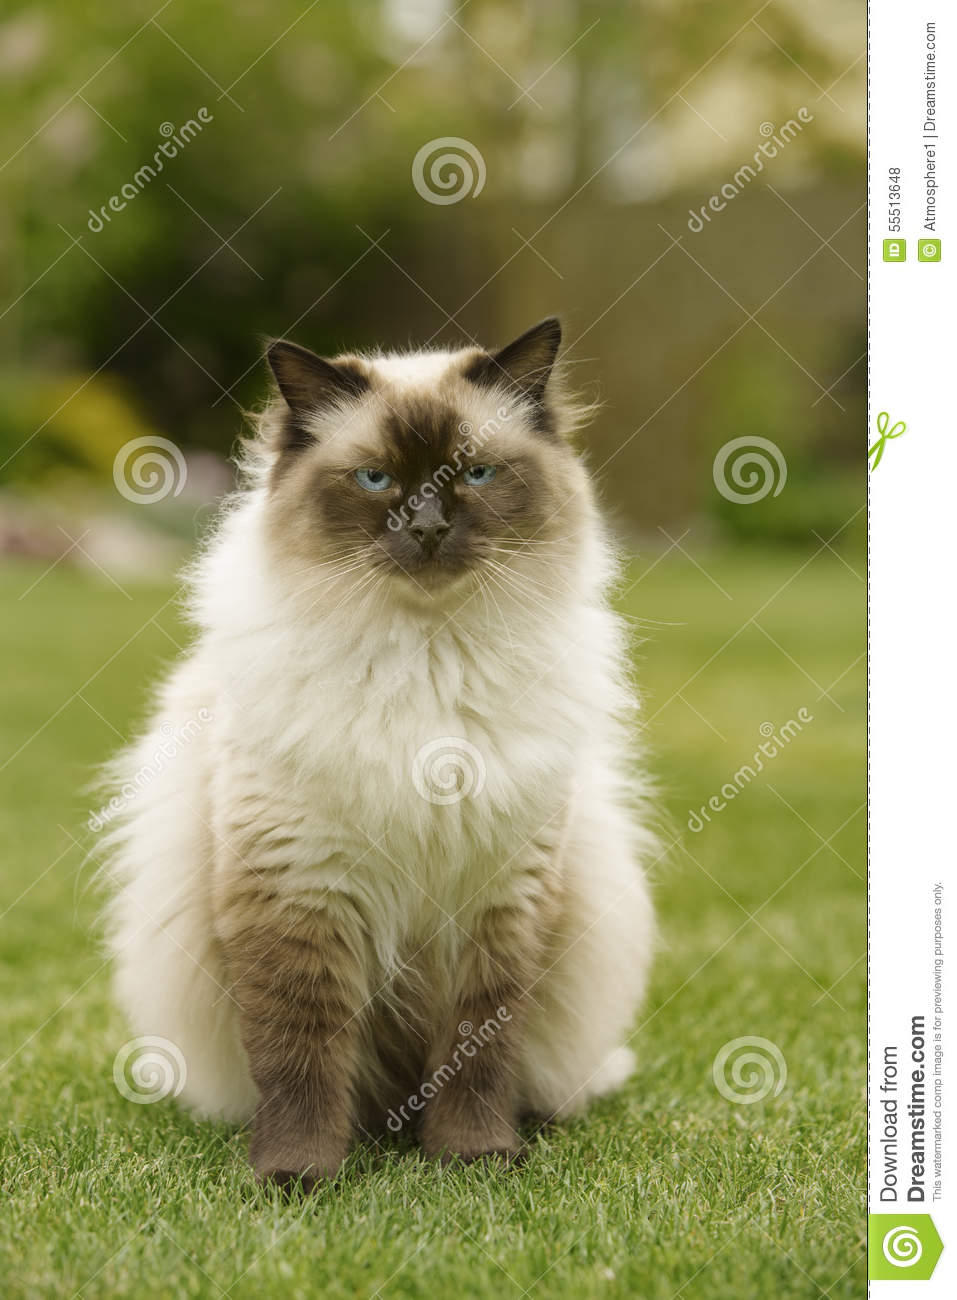 Cute Ragdoll kitty cat with blue eyes sitting straight on grass in a garden